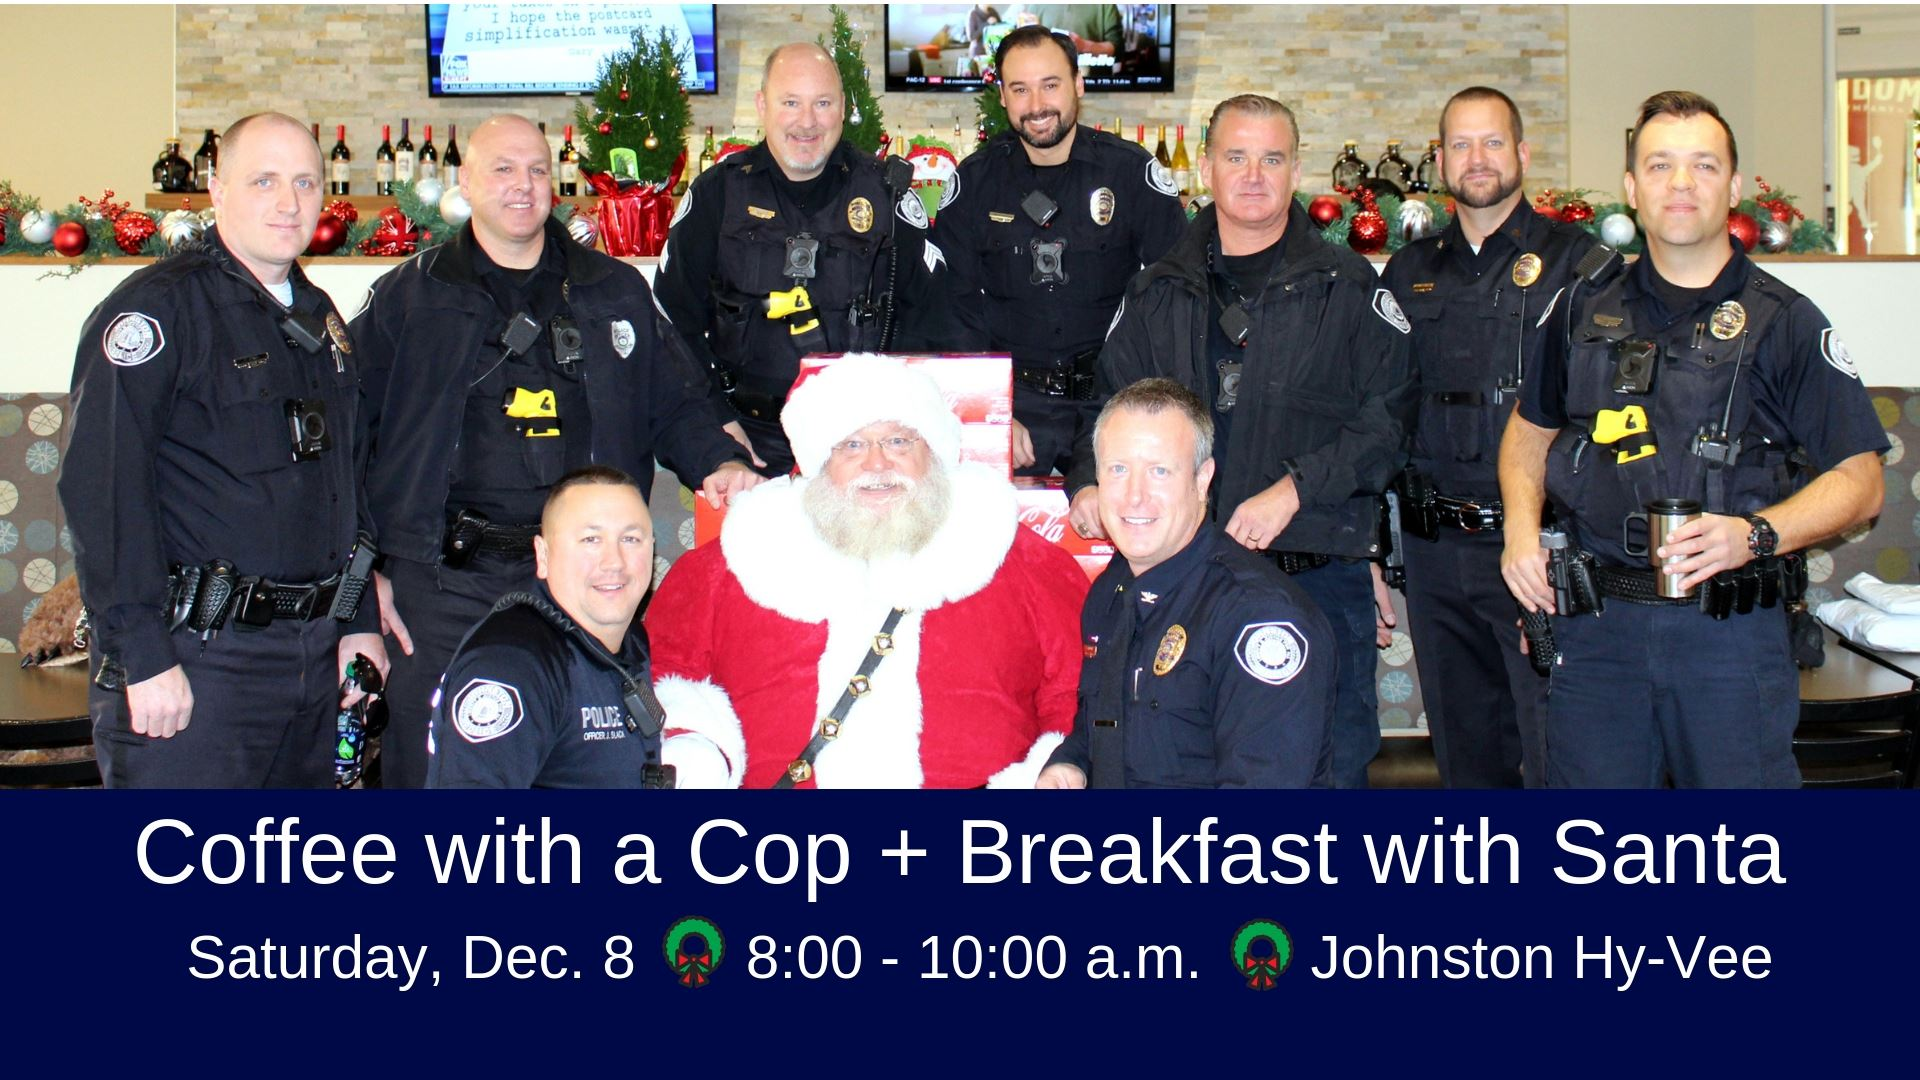 Coffee with a Cop Breakfast with Santa